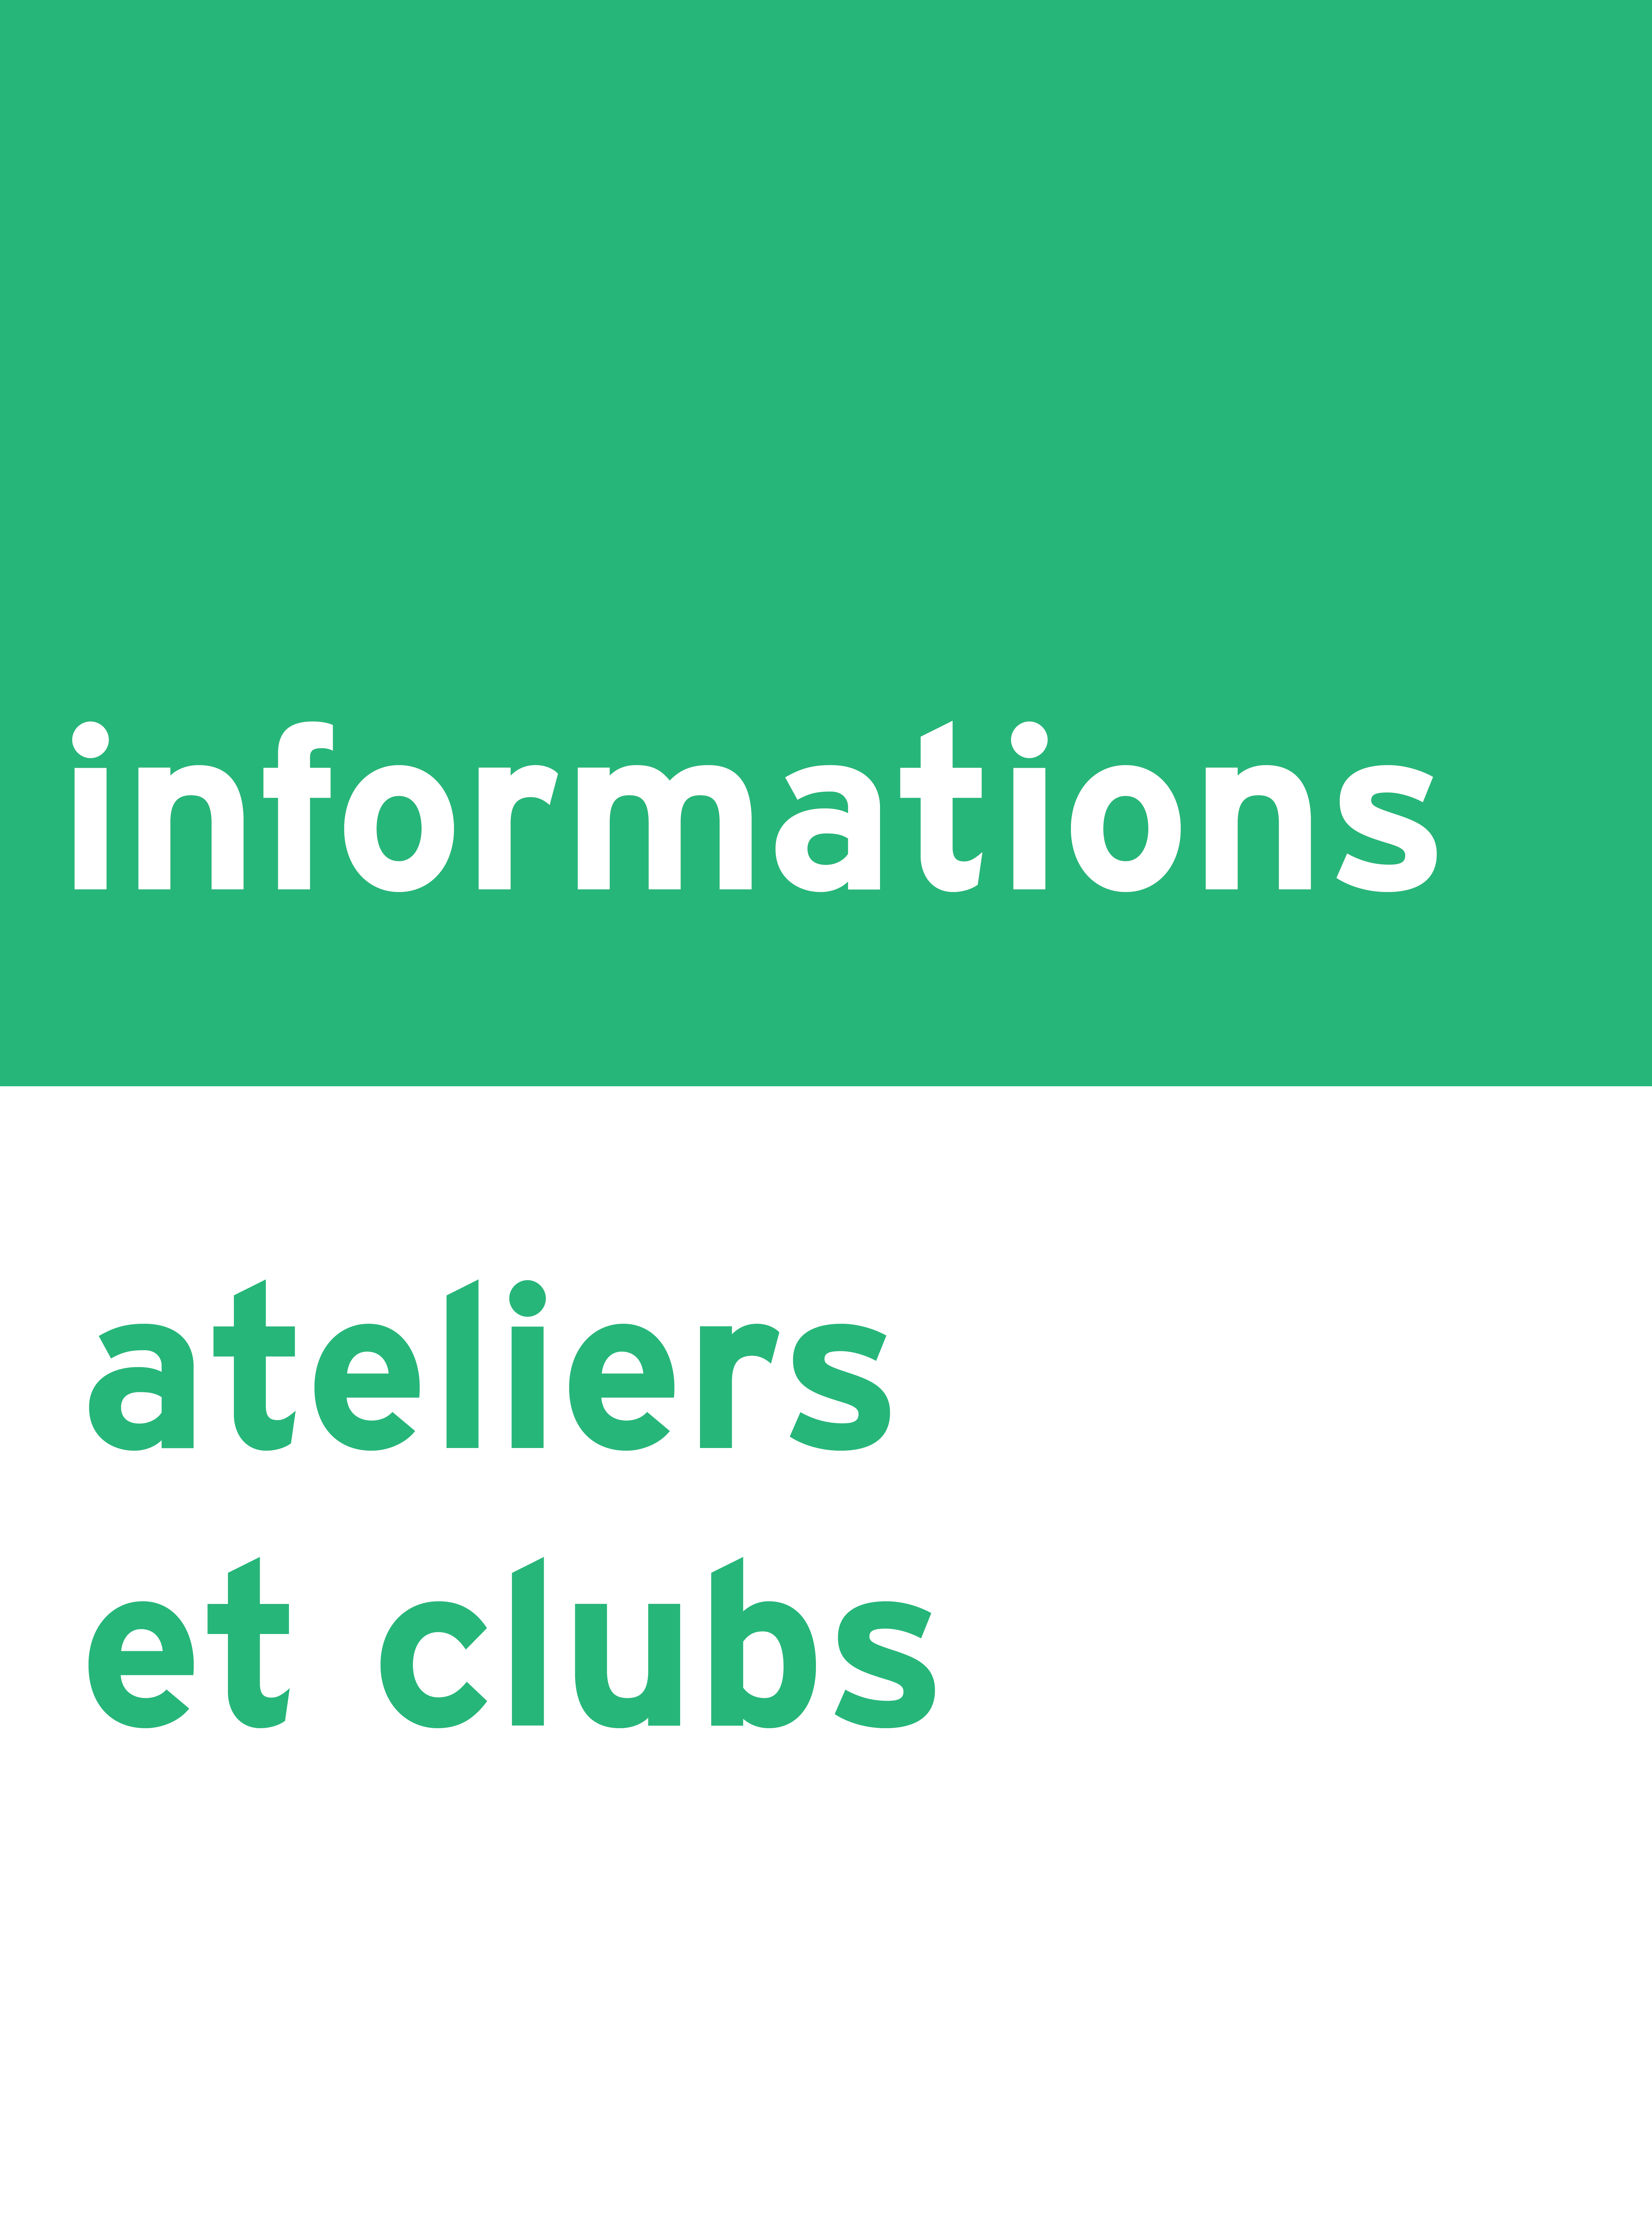 Informations ateliers et clubs